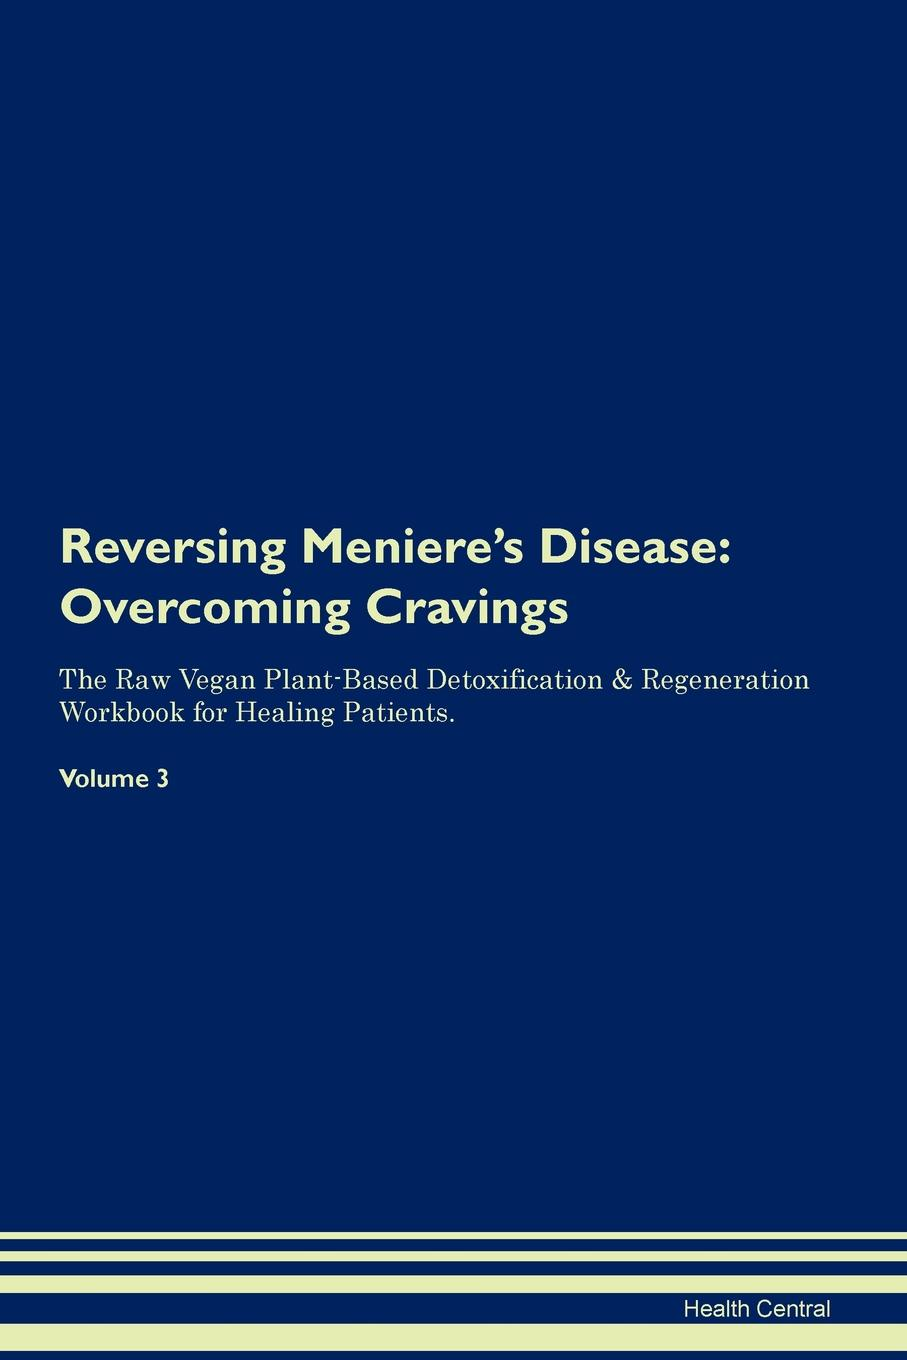 Фото - Health Central Reversing Meniere's Disease. Overcoming Cravings The Raw Vegan Plant-Based Detoxification & Regeneration Workbook for Healing Patients. Volume 3 health central reversing extramammary paget s disease overcoming cravings the raw vegan plant based detoxification regeneration workbook for healing patients volume 3